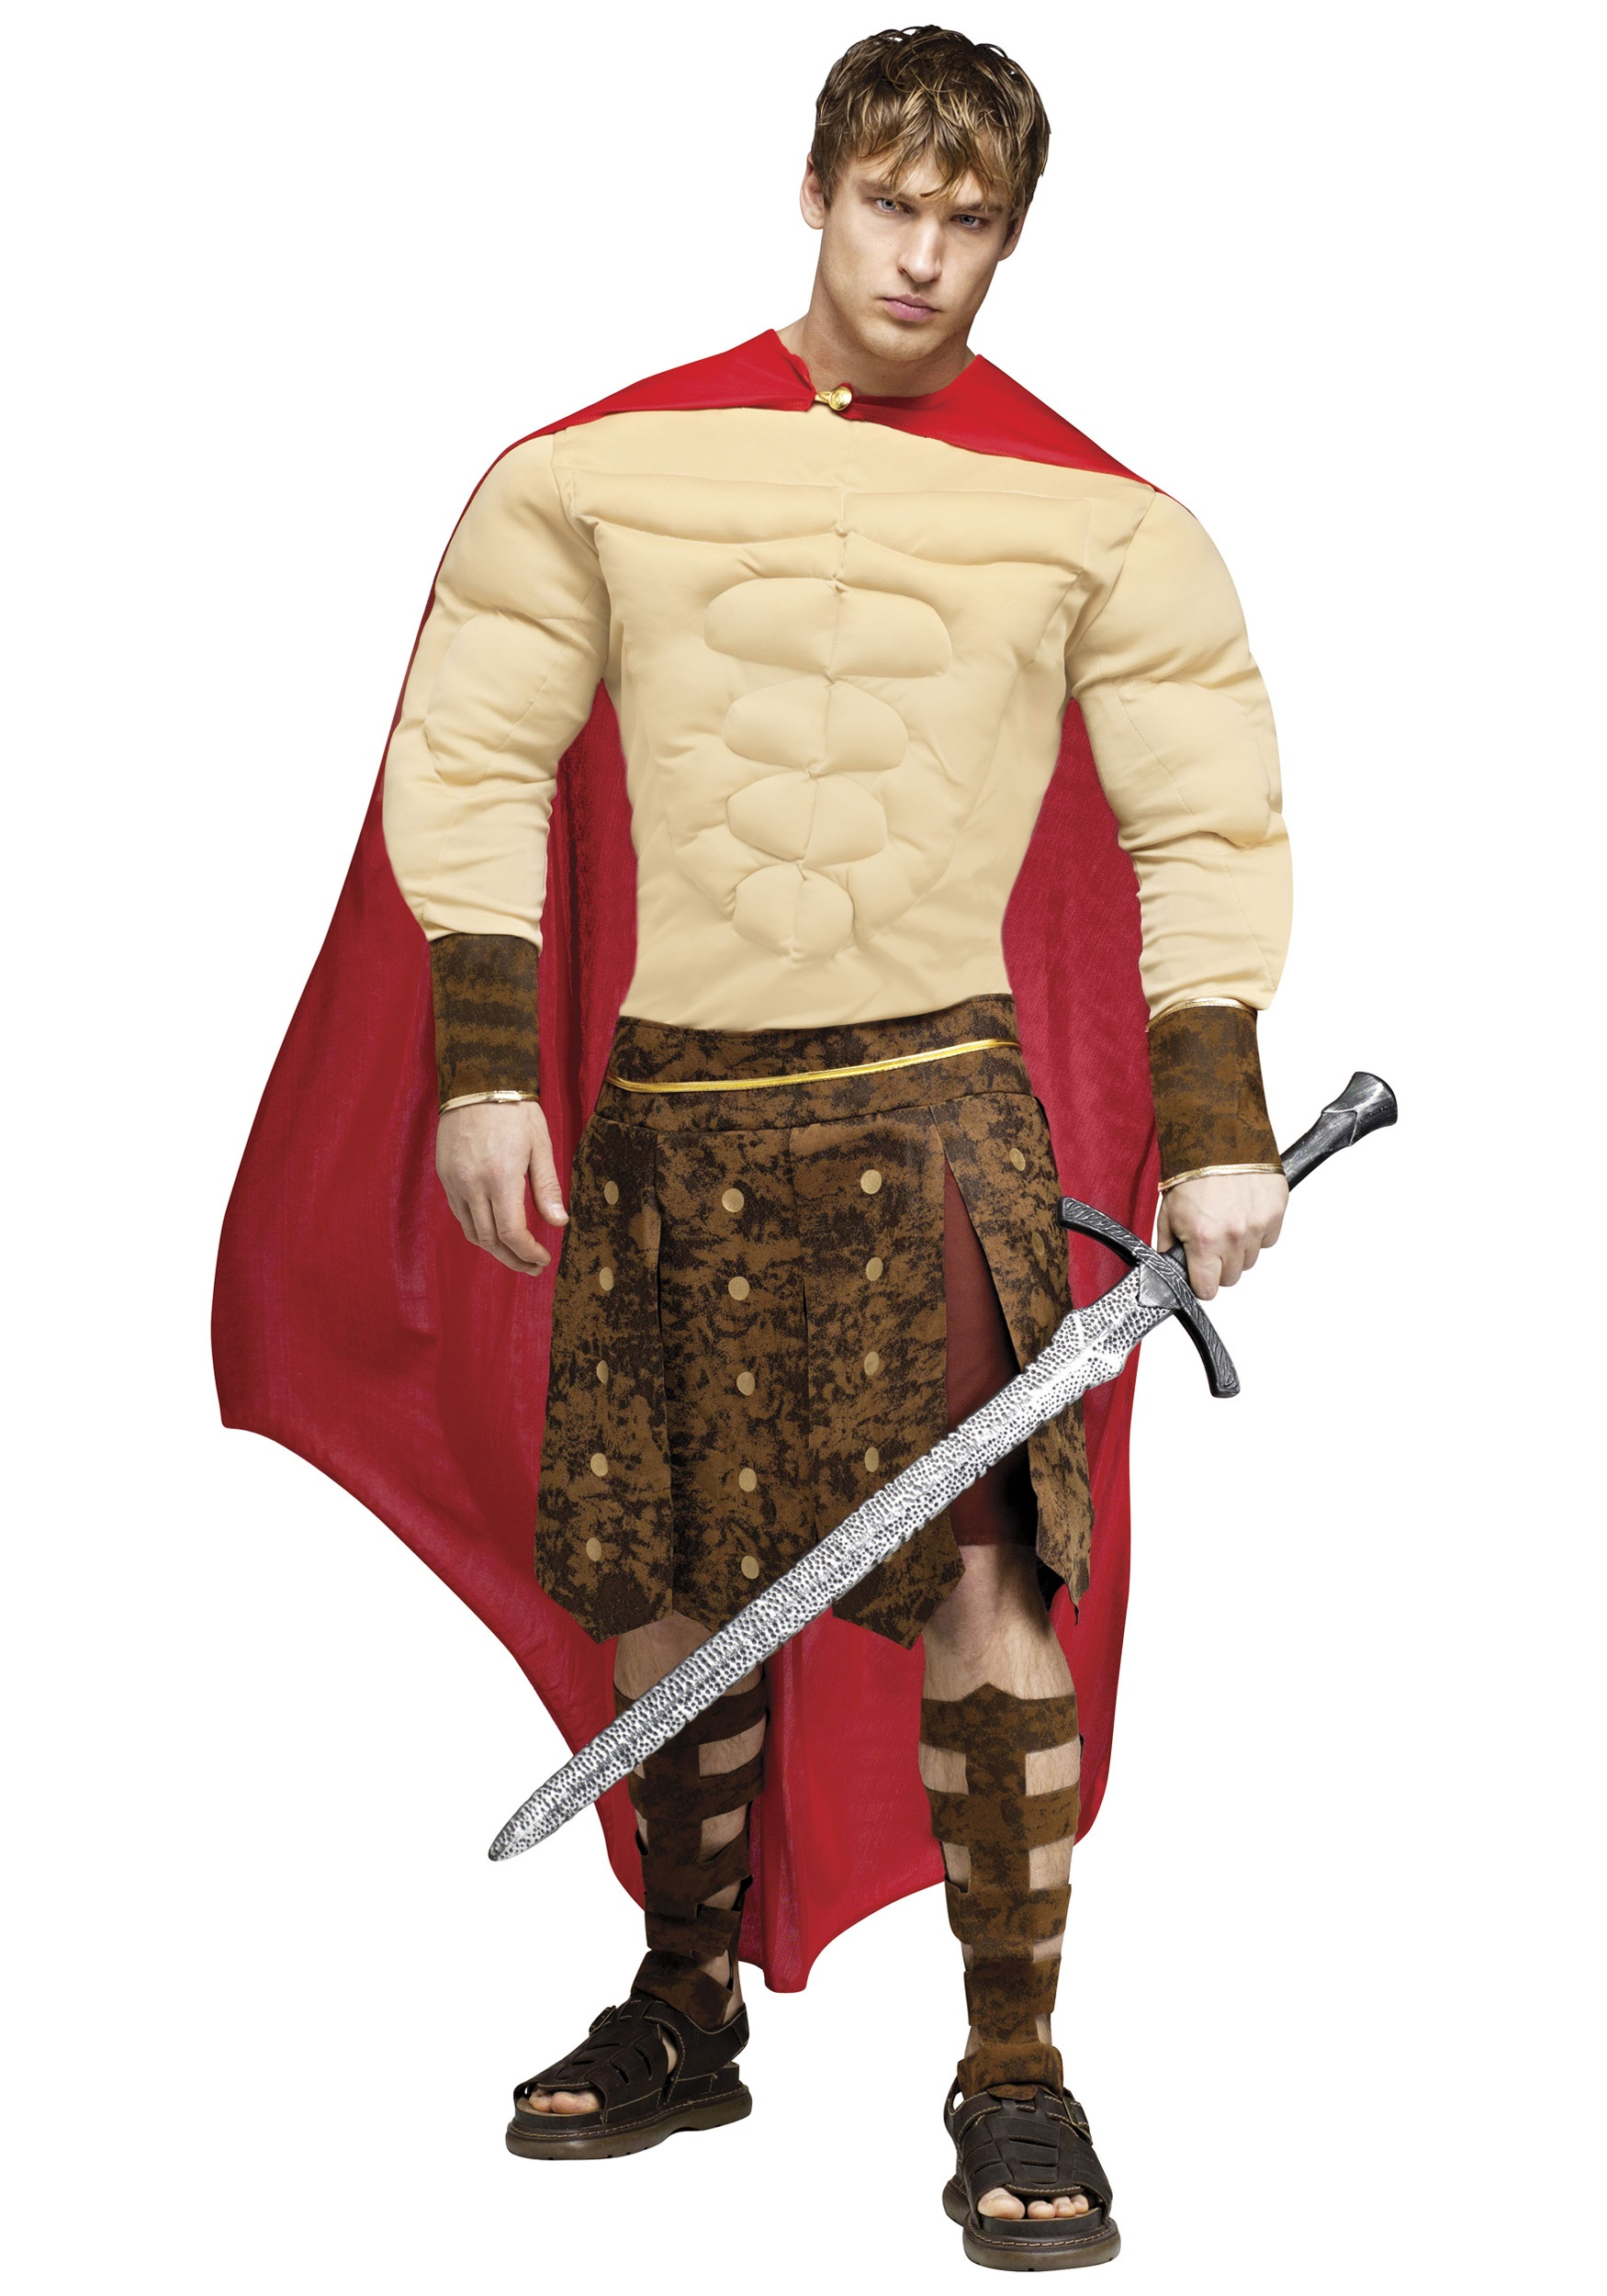 Muscle Chest Gladiator Costume  sc 1 st  Halloween Costumes & Muscle Chest Gladiator Costume - Halloween Costumes